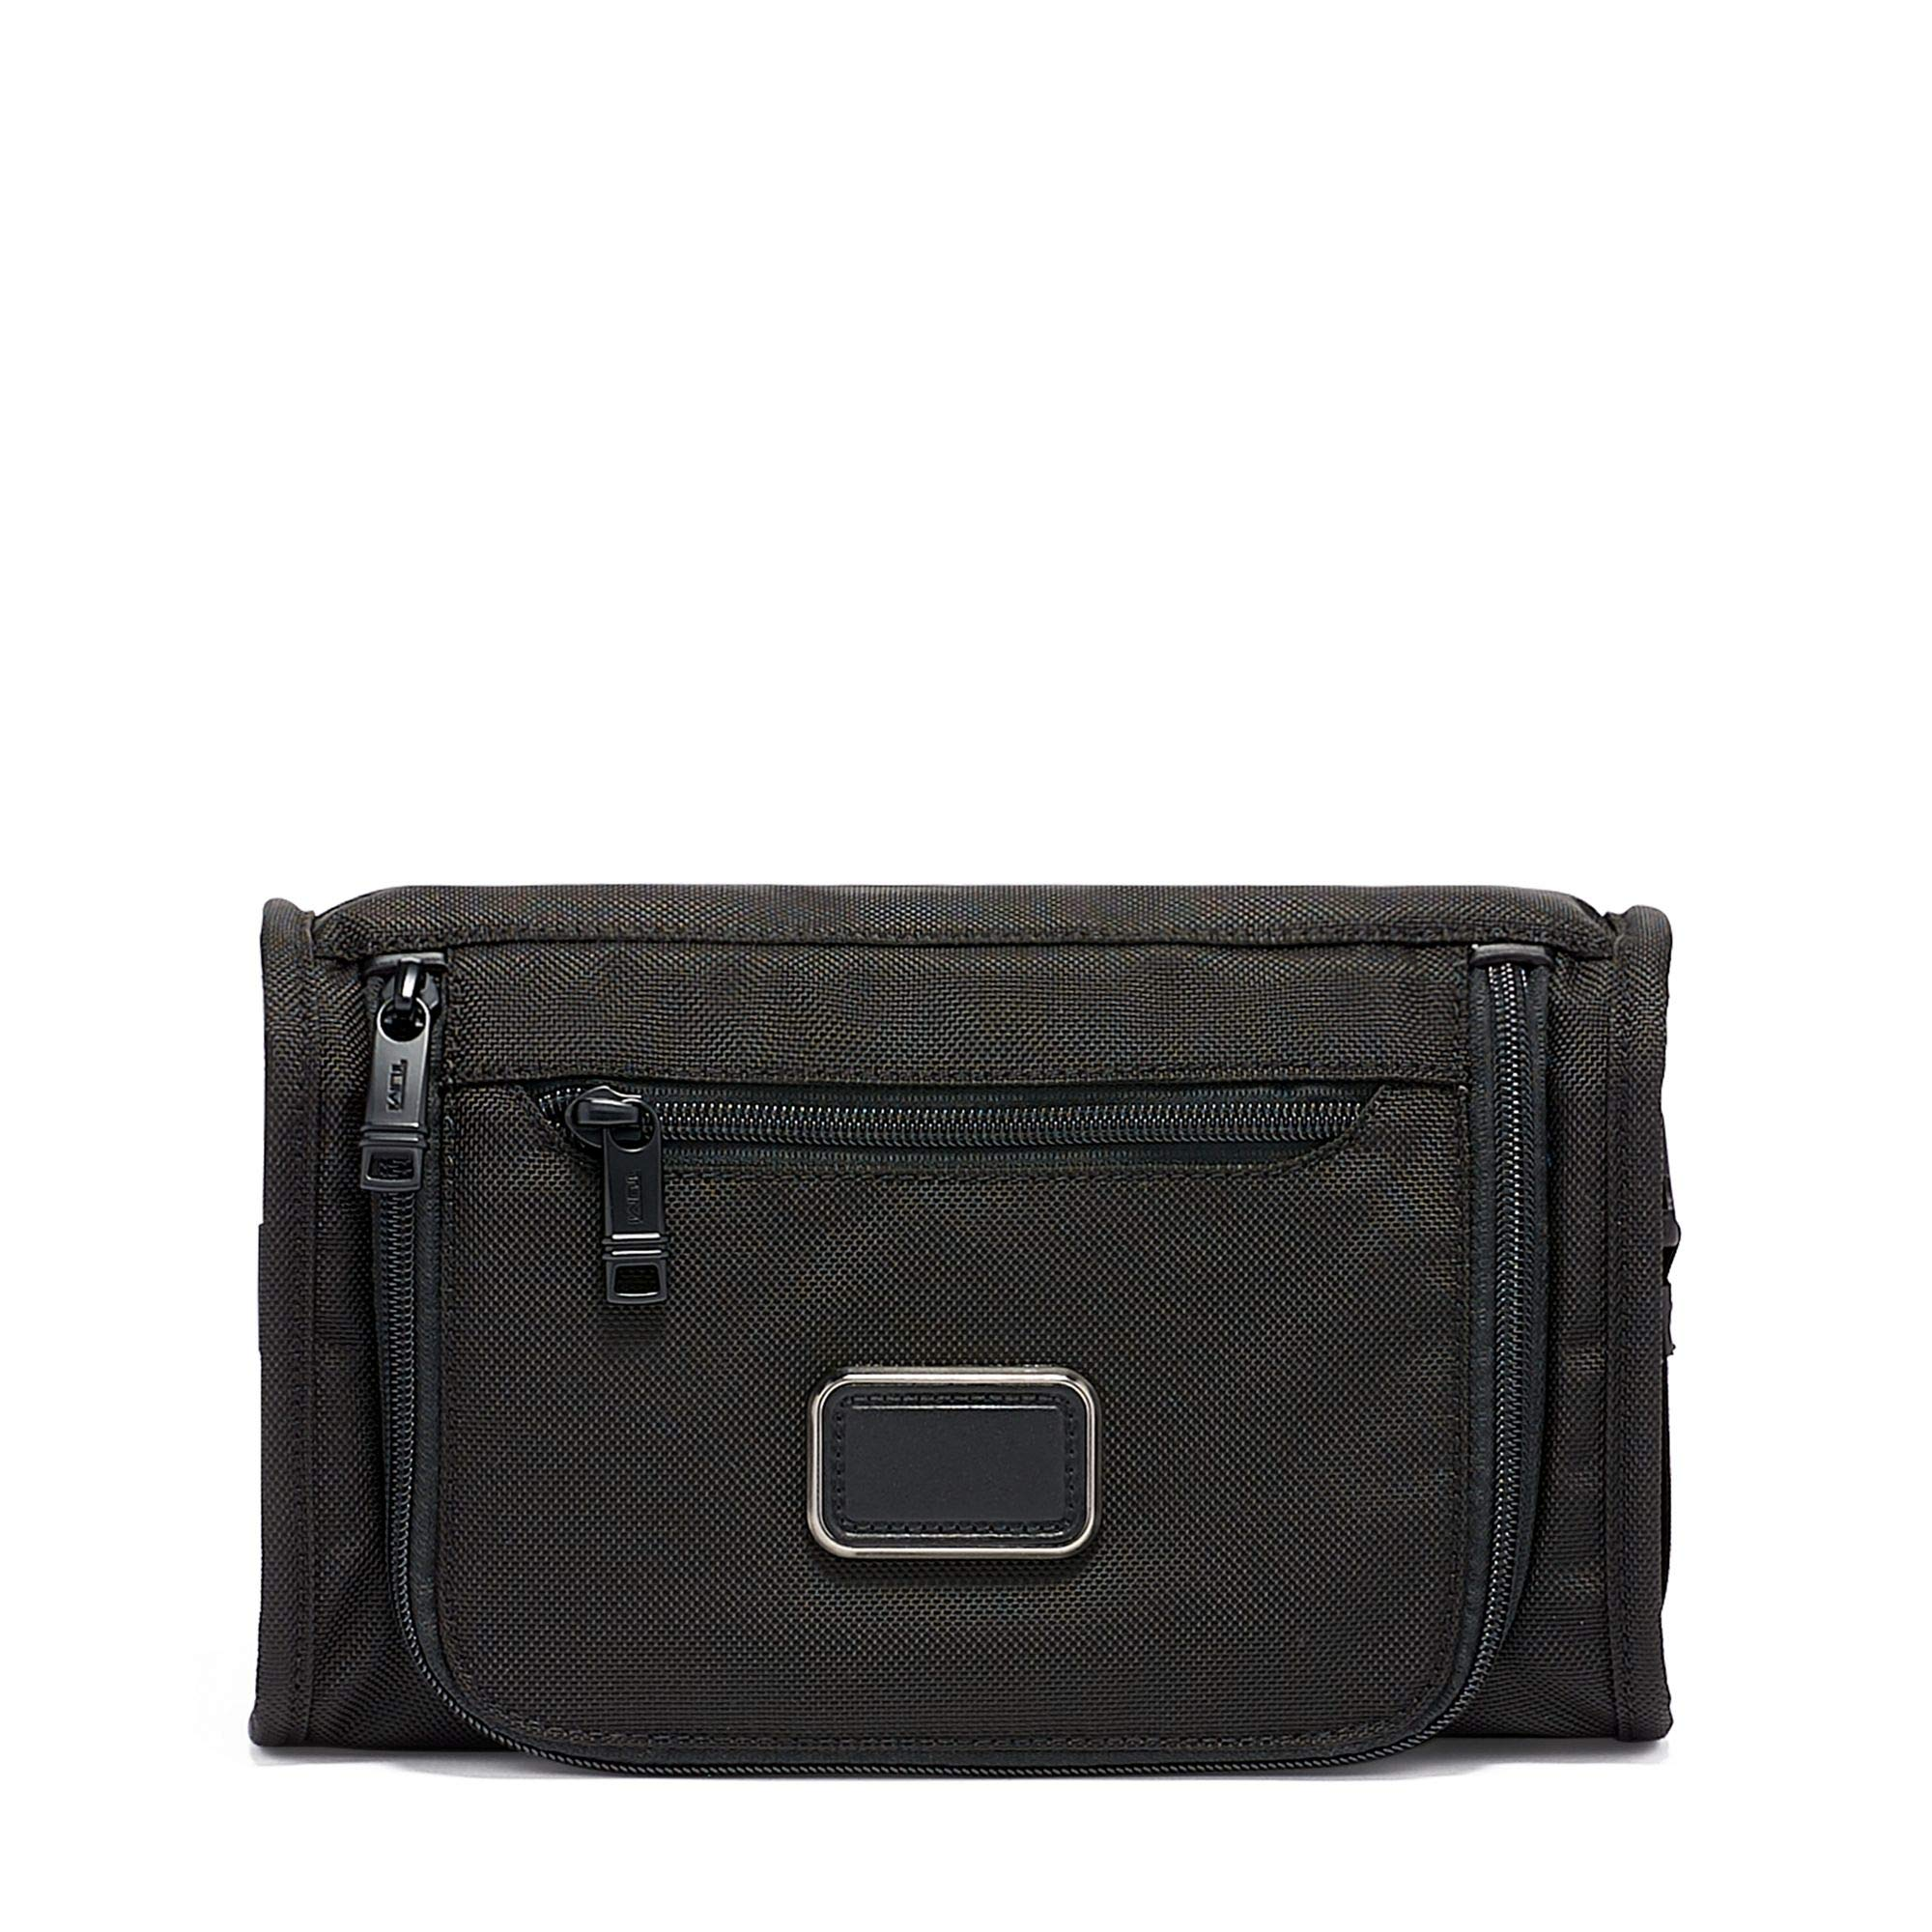 TUMI - Alpha 3 Travel Kit - Luggage Accessories Toiletry Bag for Men and Women - Black by TUMI